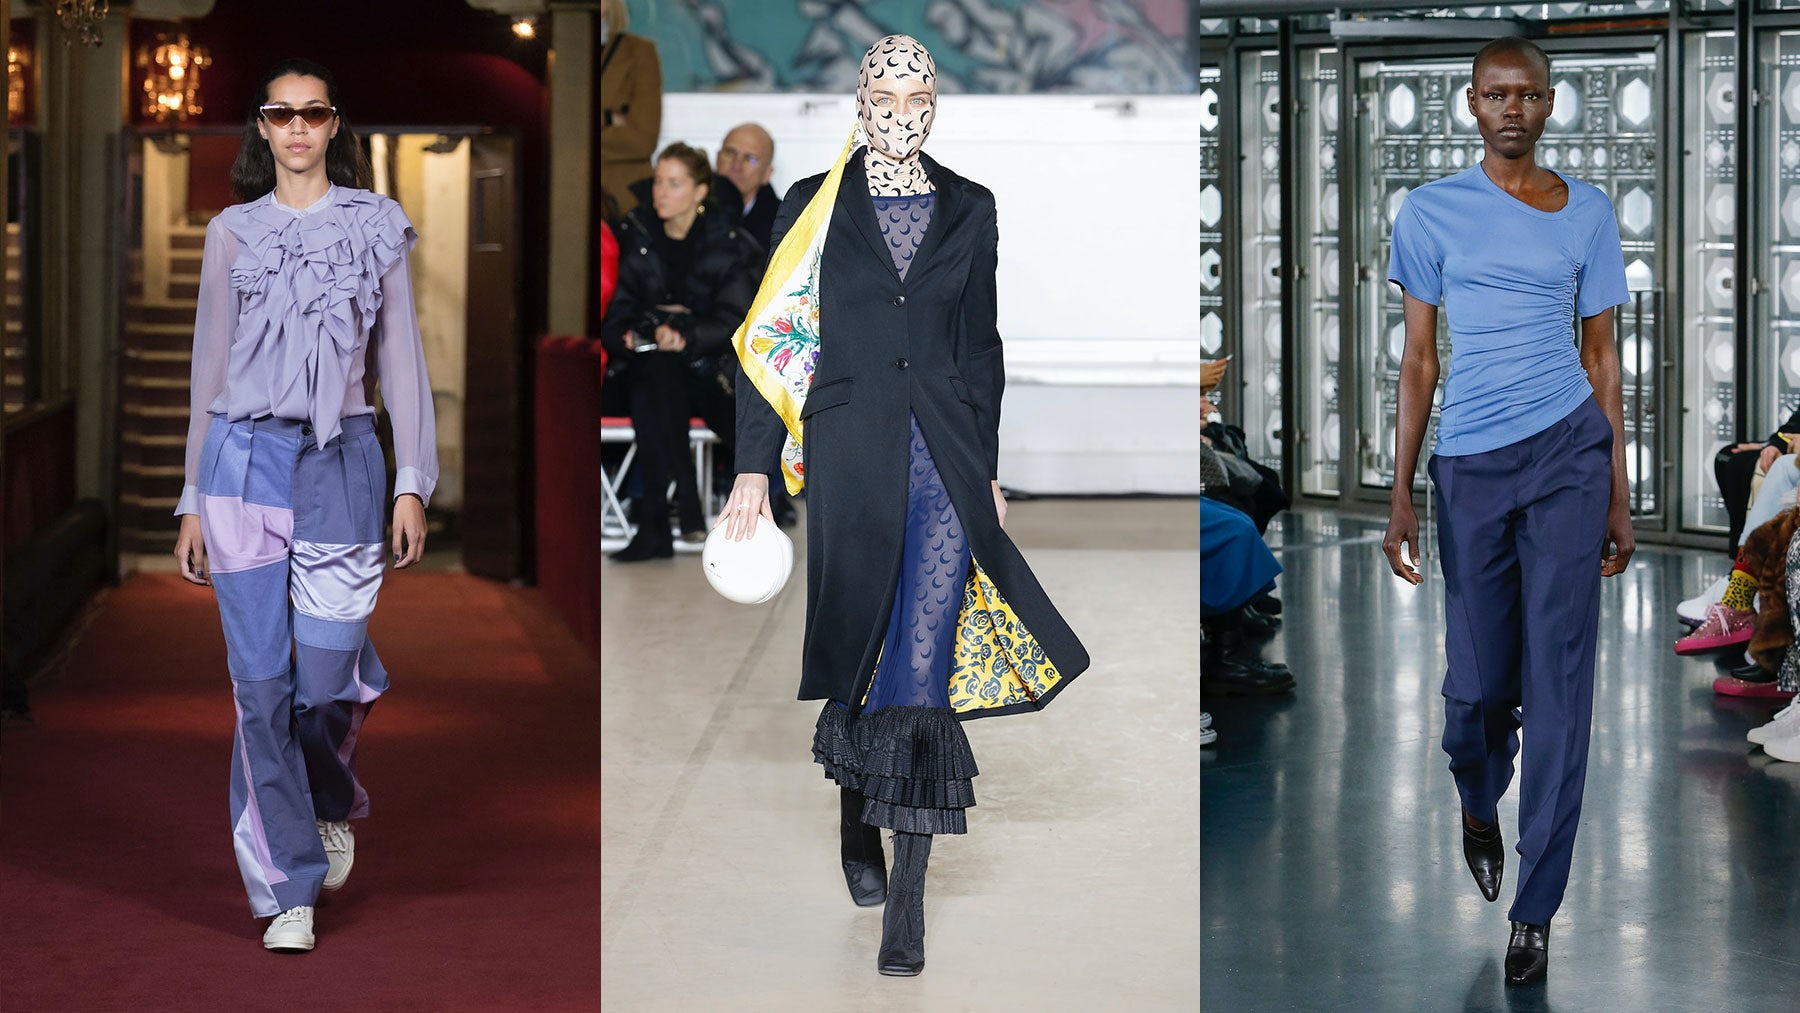 Autumn/Winter 2018 catwalk looks by Koché, Marine Serre and Atlein | Sources: Courtesy, Indigial, Indigital